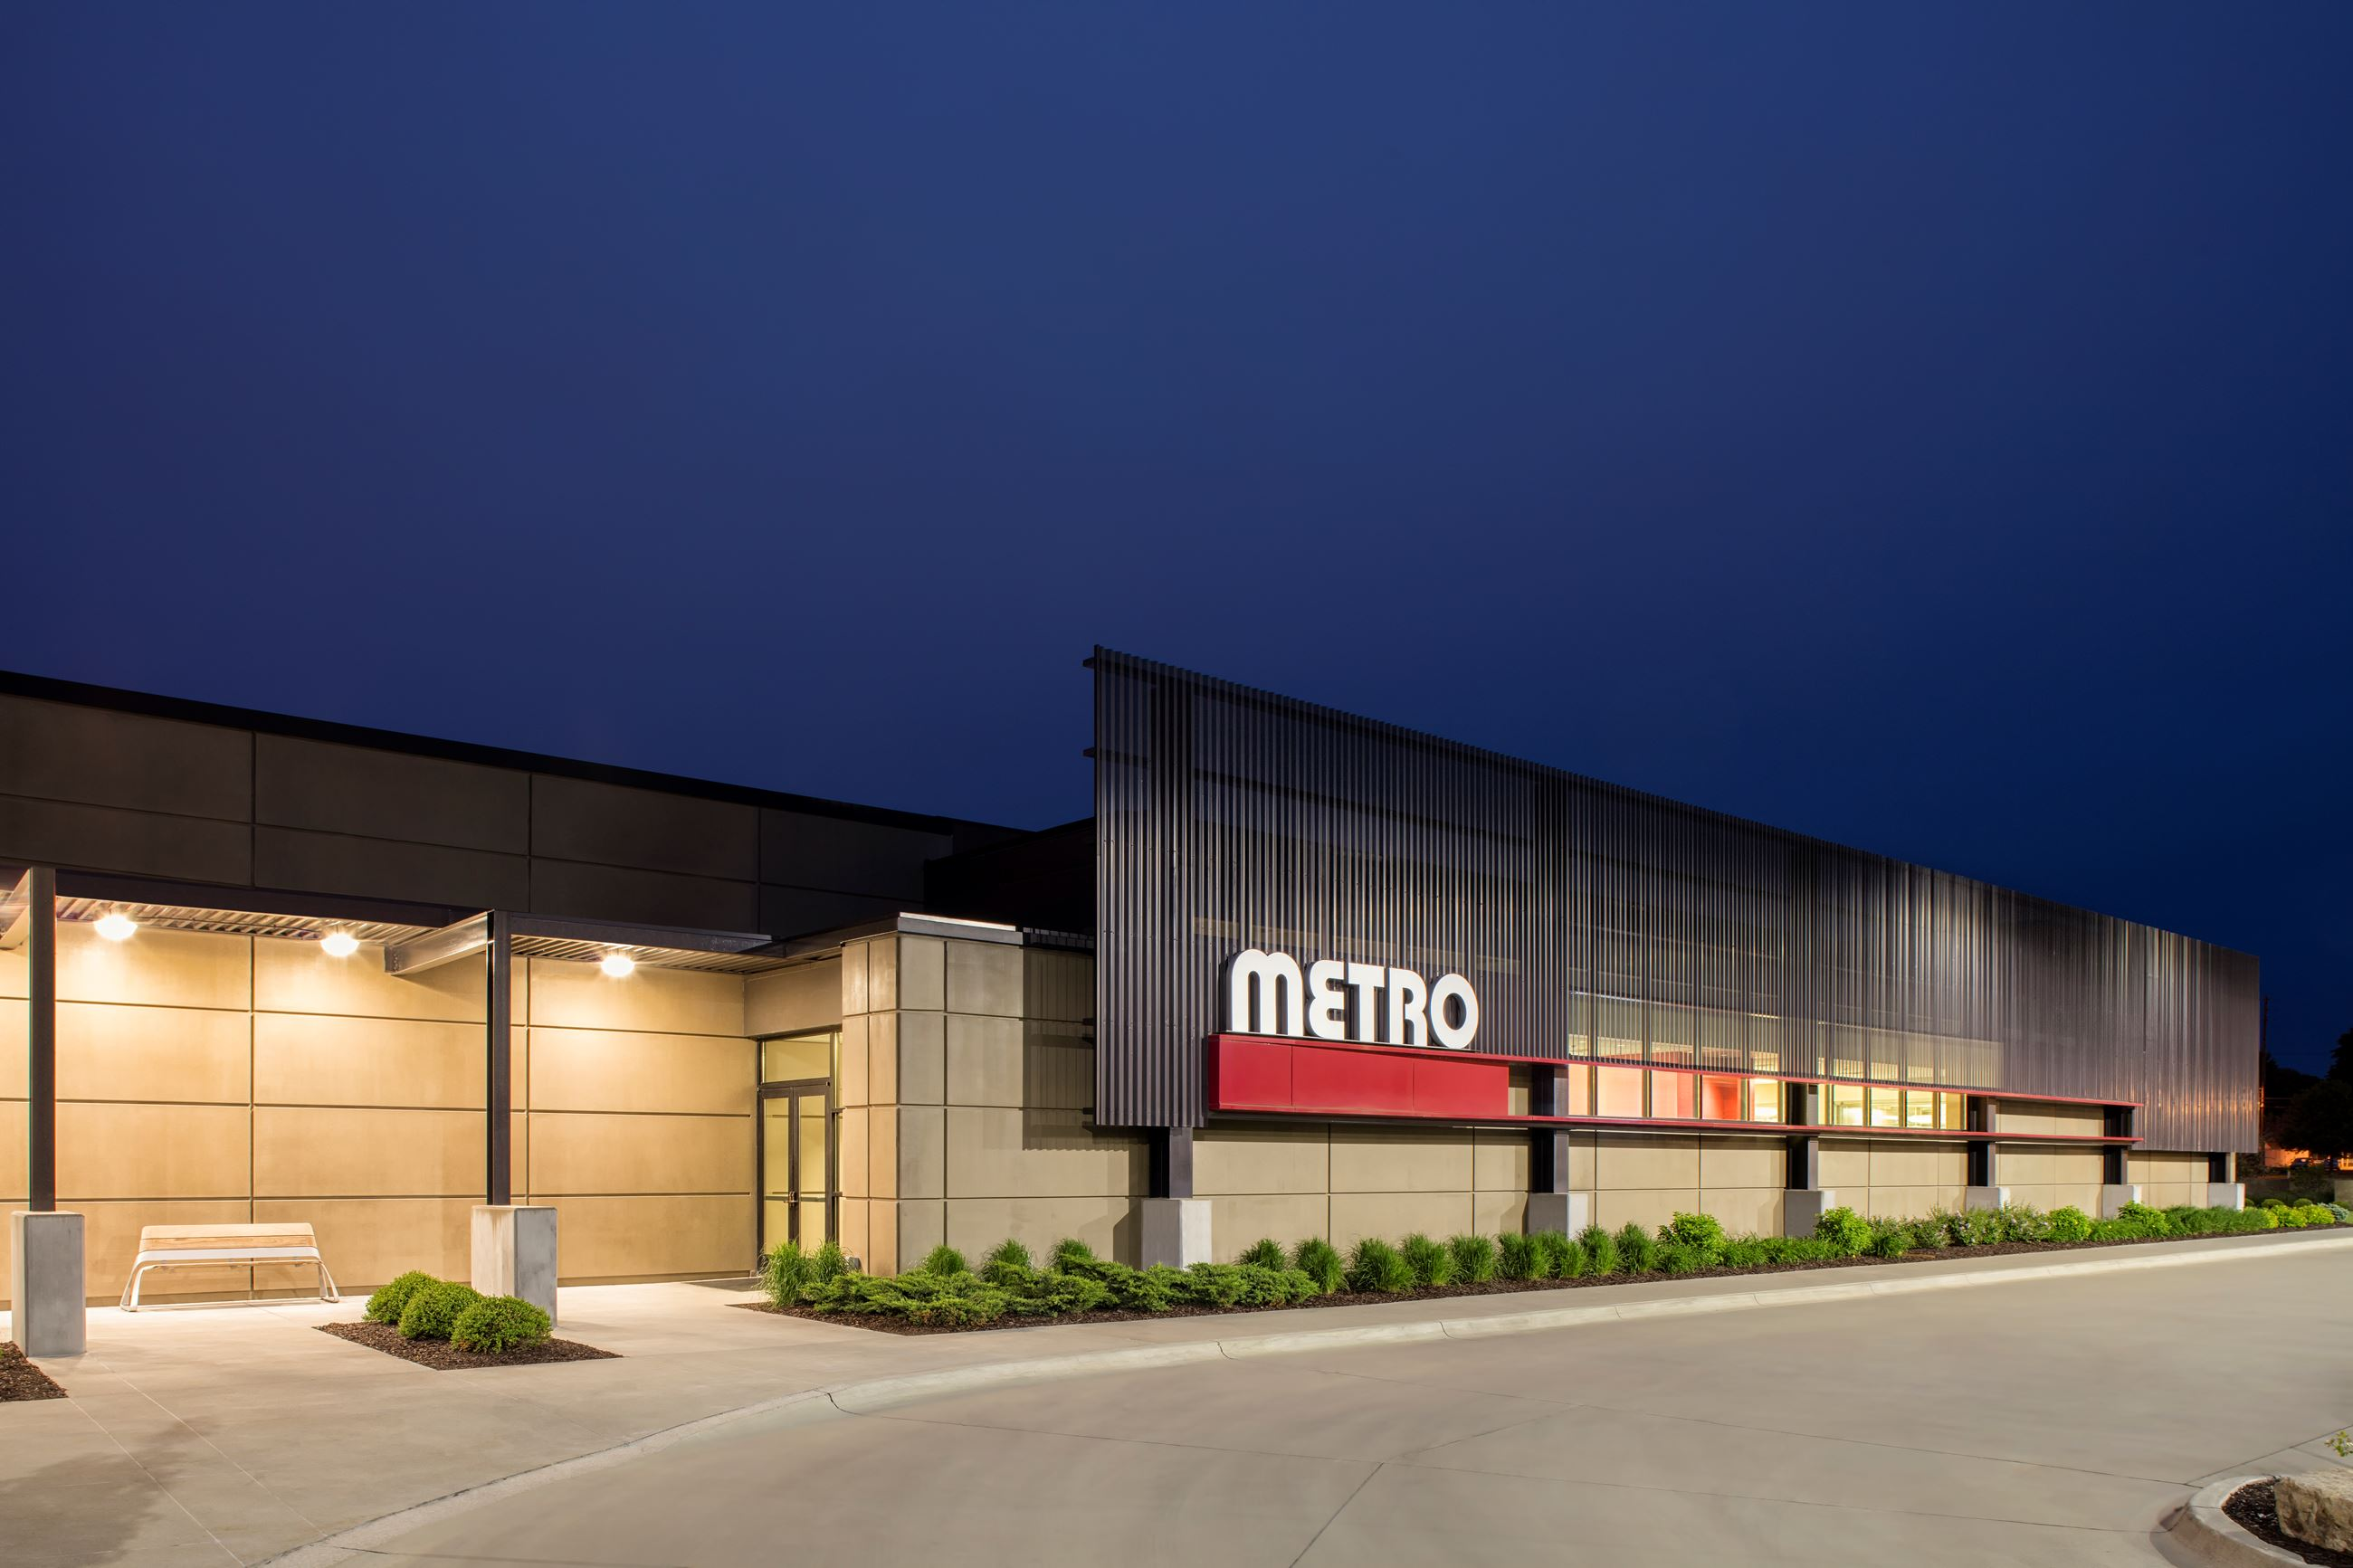 Metro Operations and Maintenance Center - Night